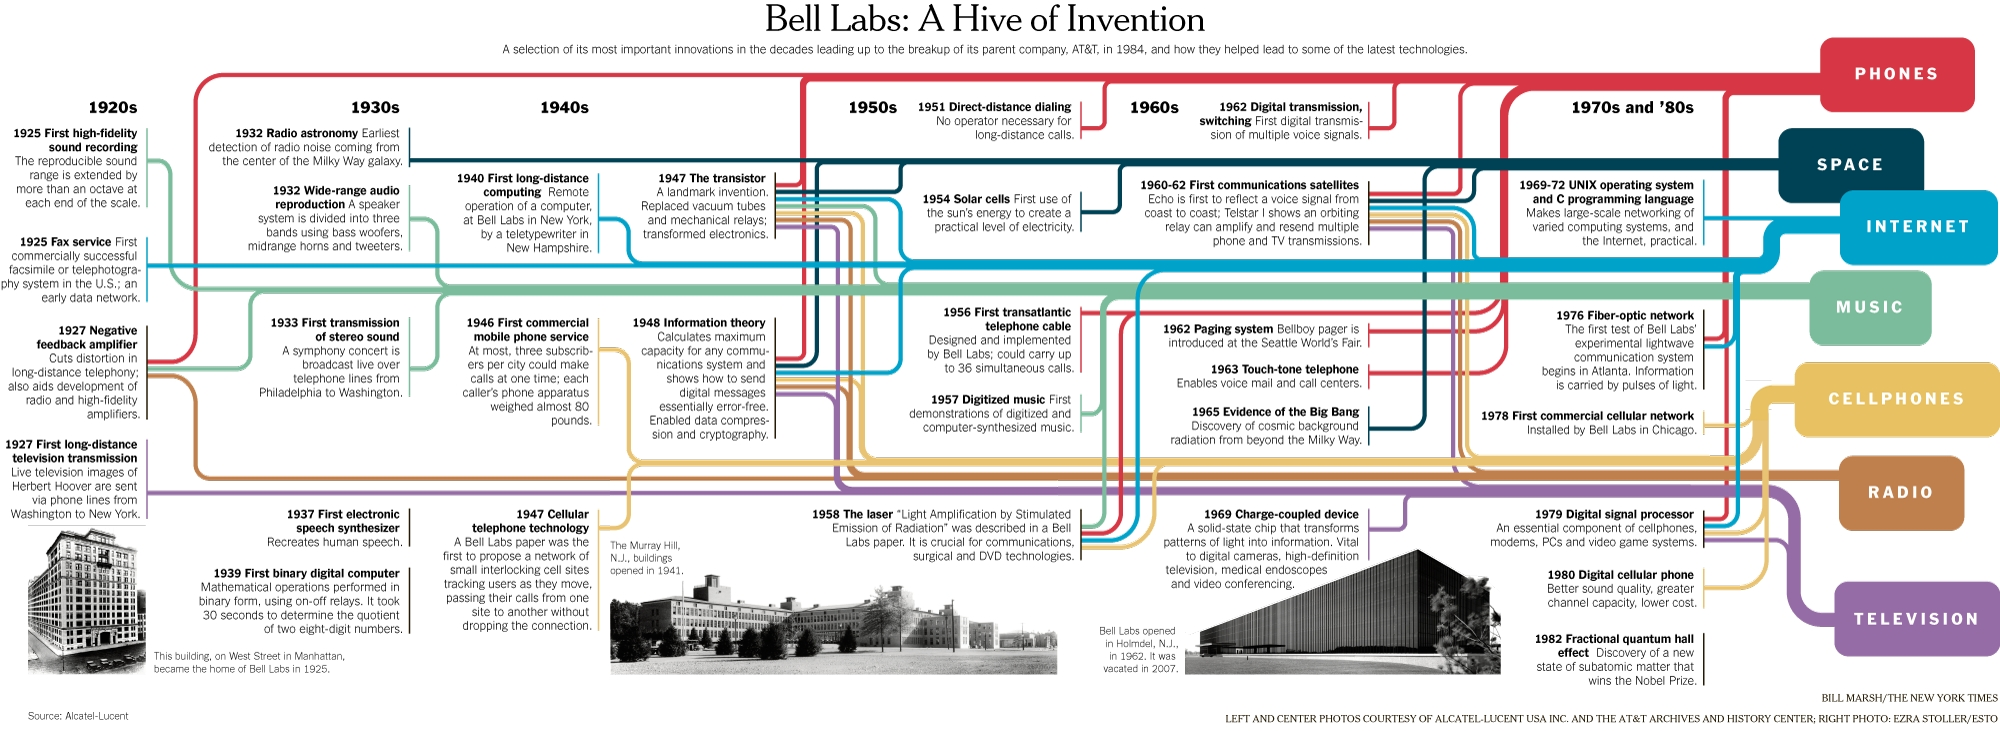 bell system memorial- bell labs